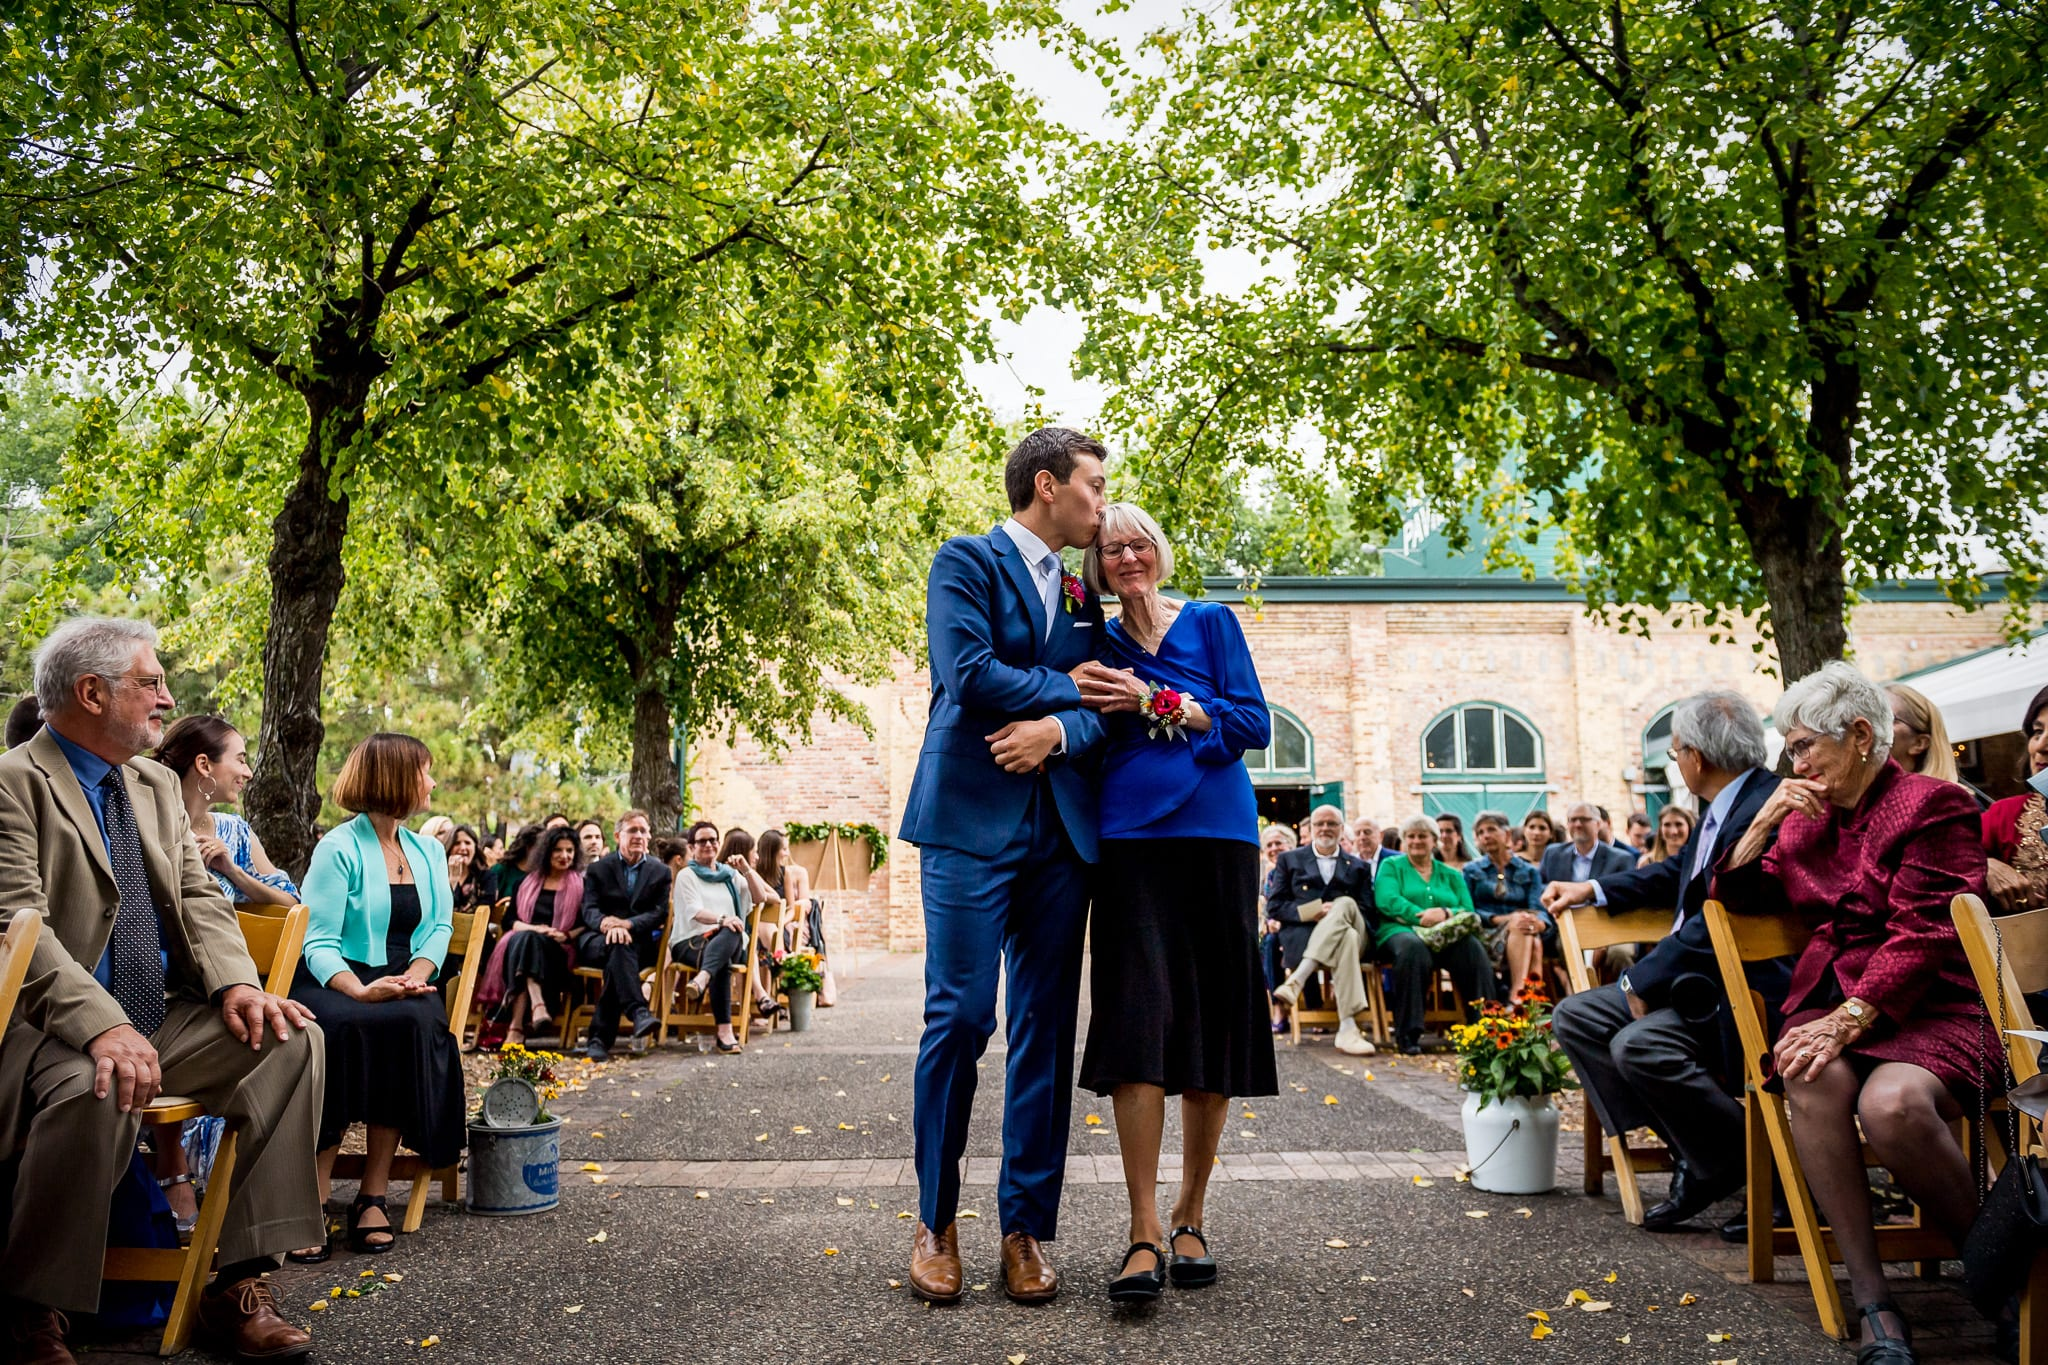 Groom kisses his mother on the temple while she walks him down the isle with a giant smile on her face